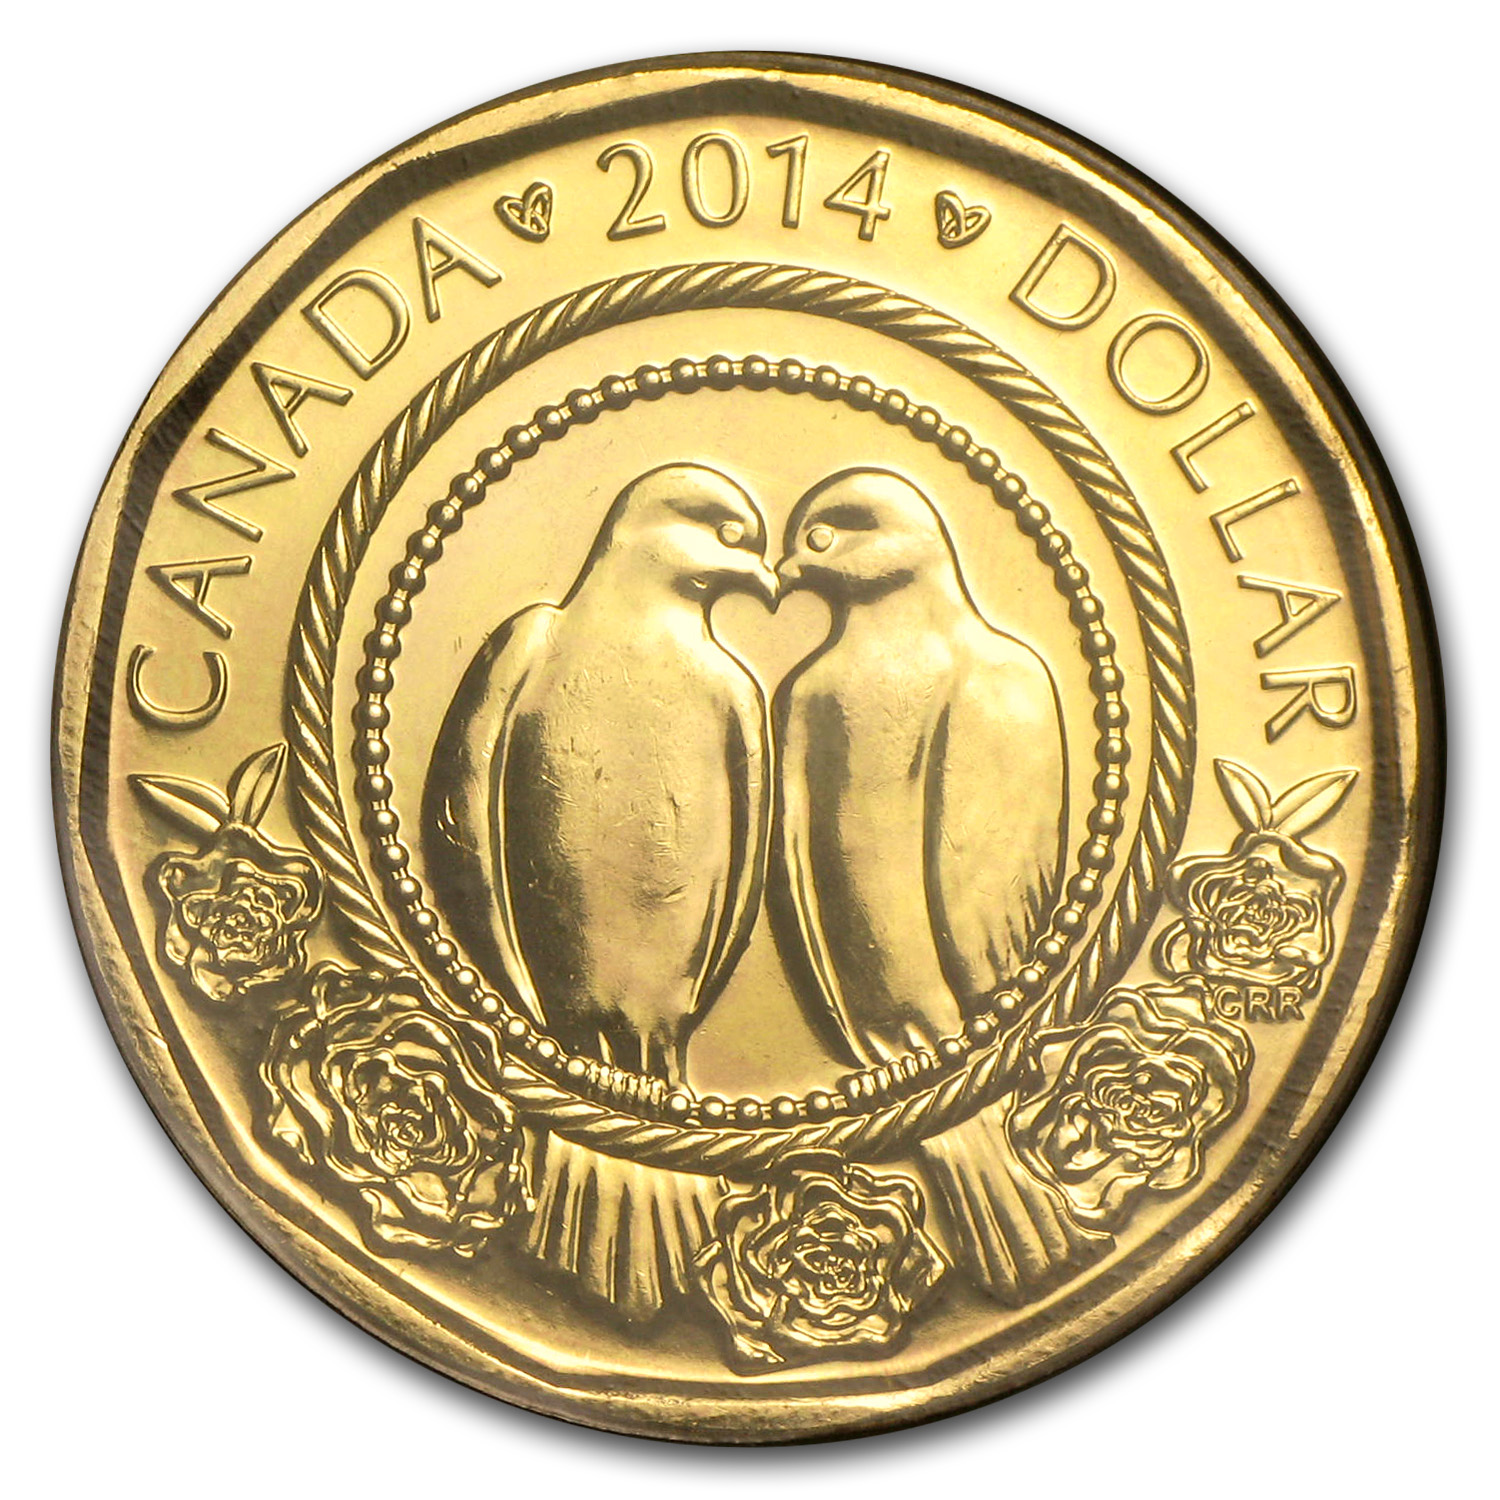 2014 Canada 5-Coin Wedding Gift Set